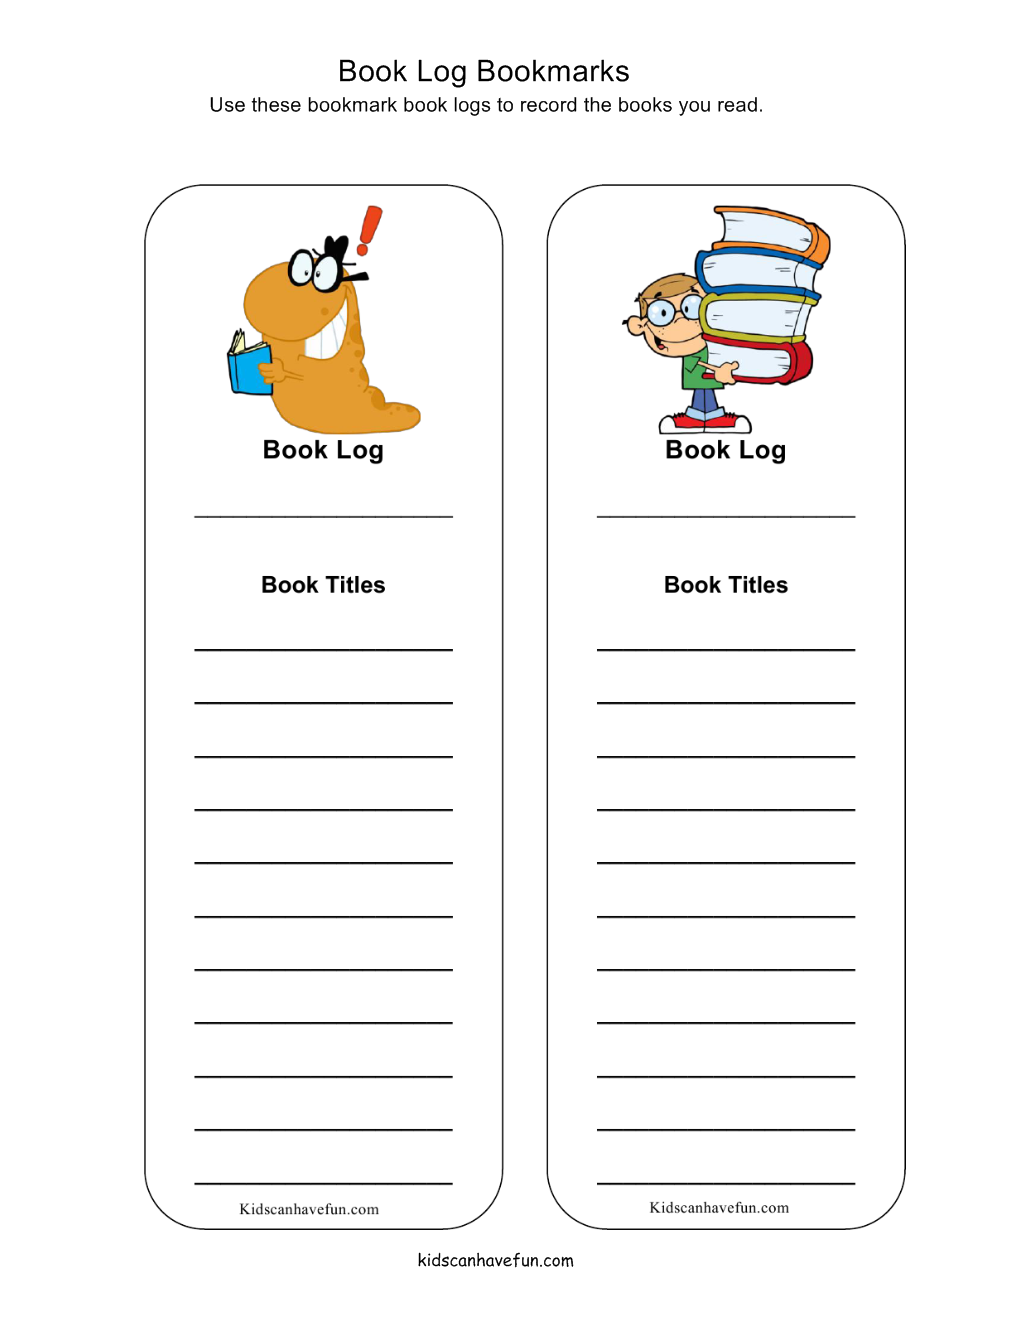 book log bookmarks for kids to write down all the recent books